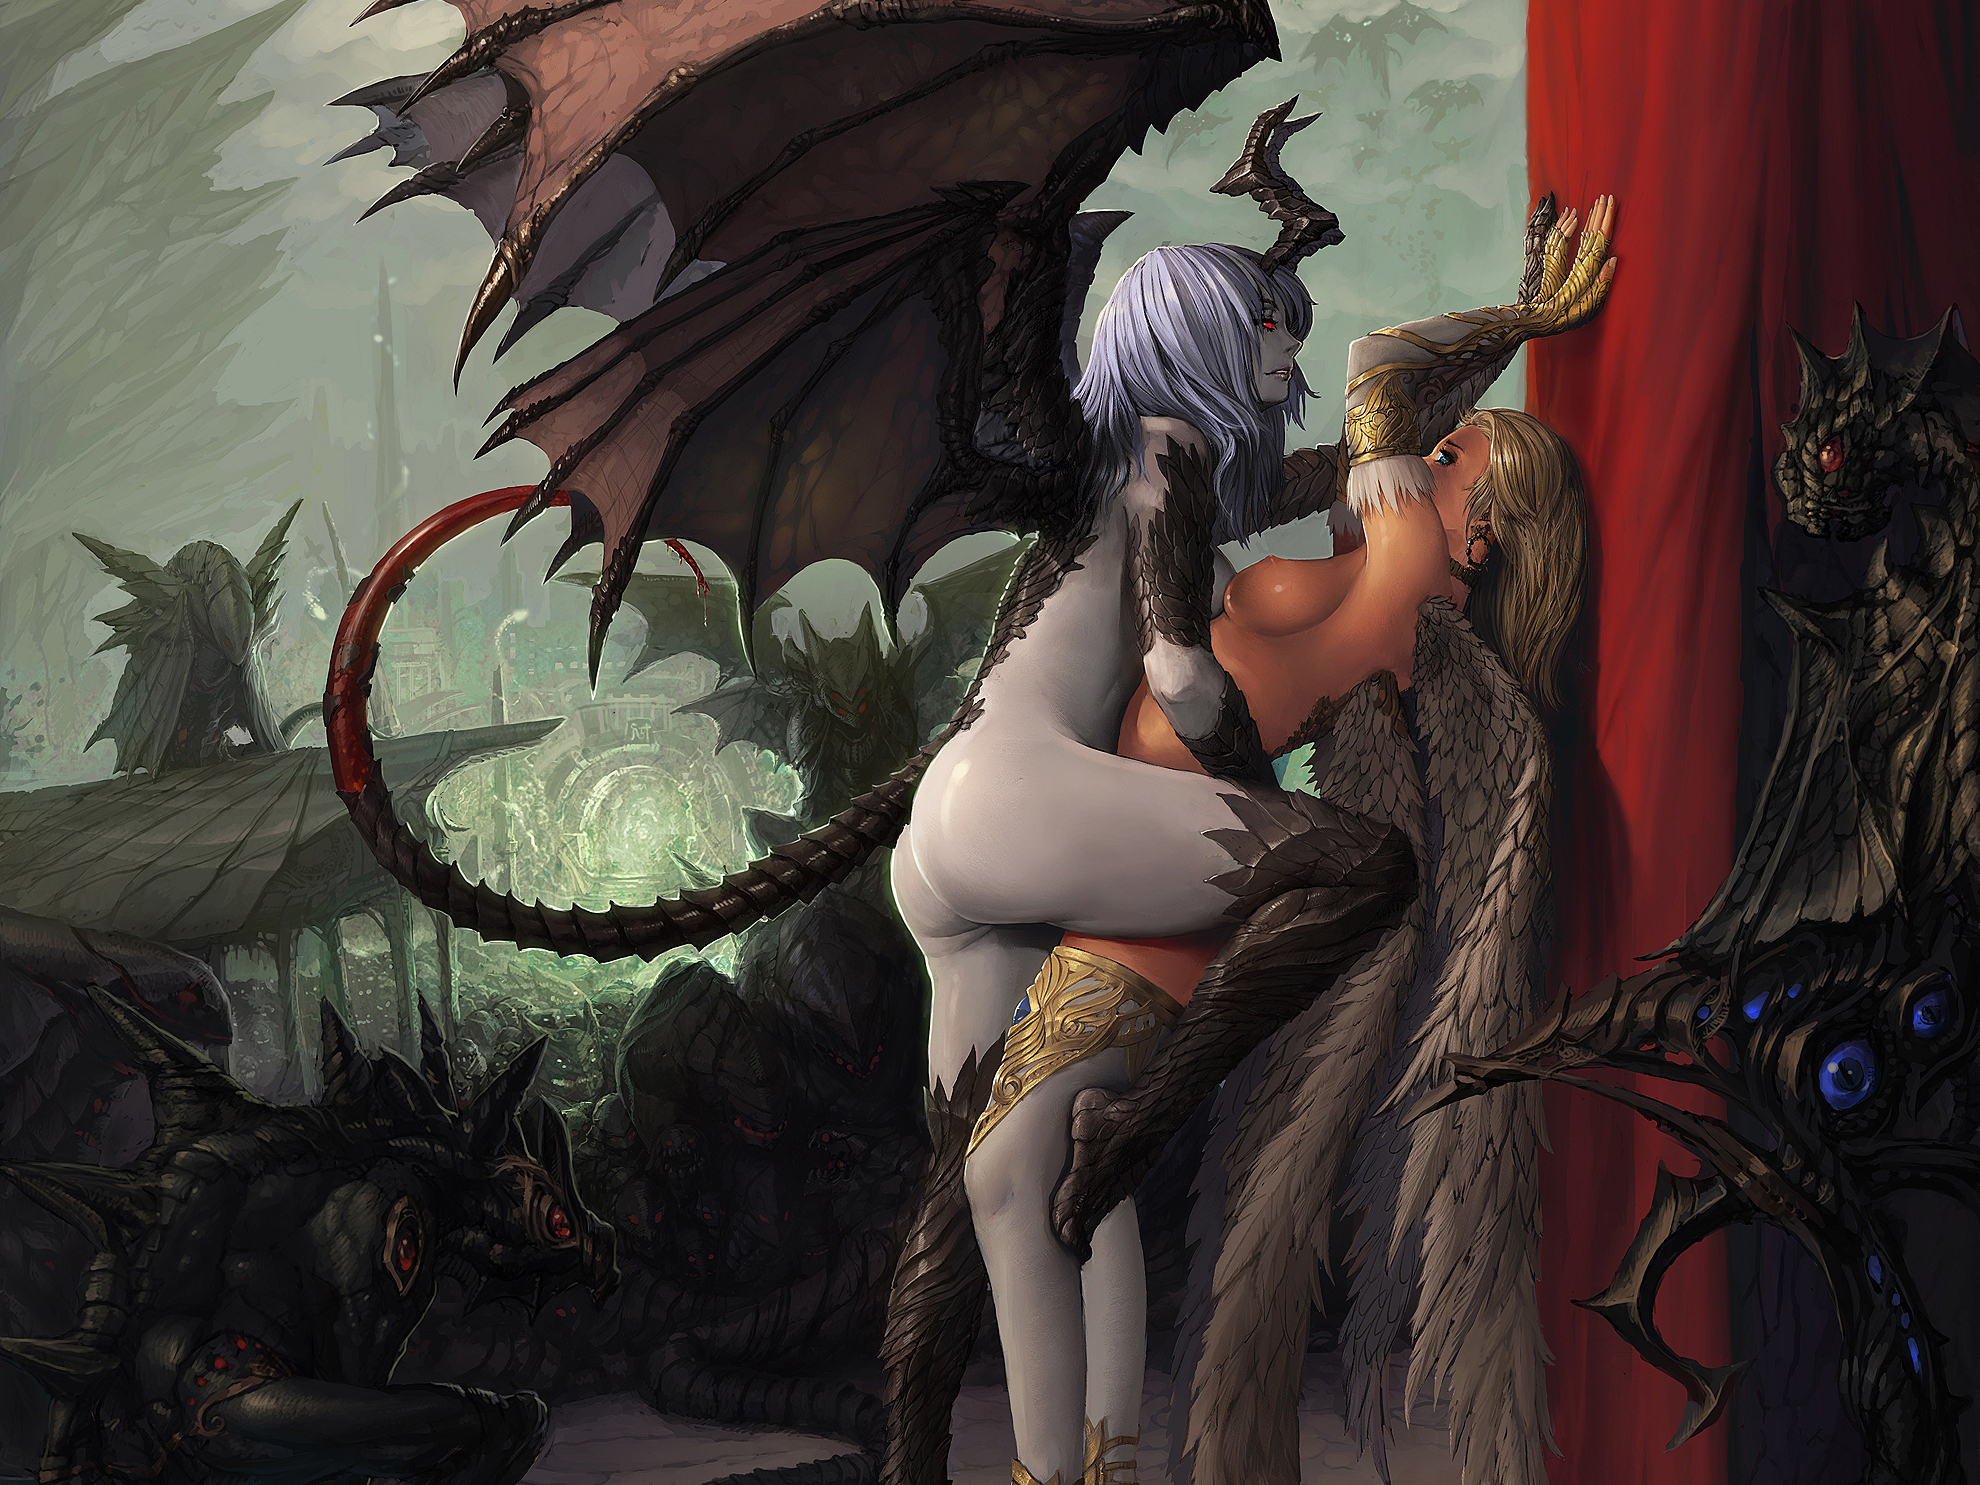 Demon erotic art fucking scene